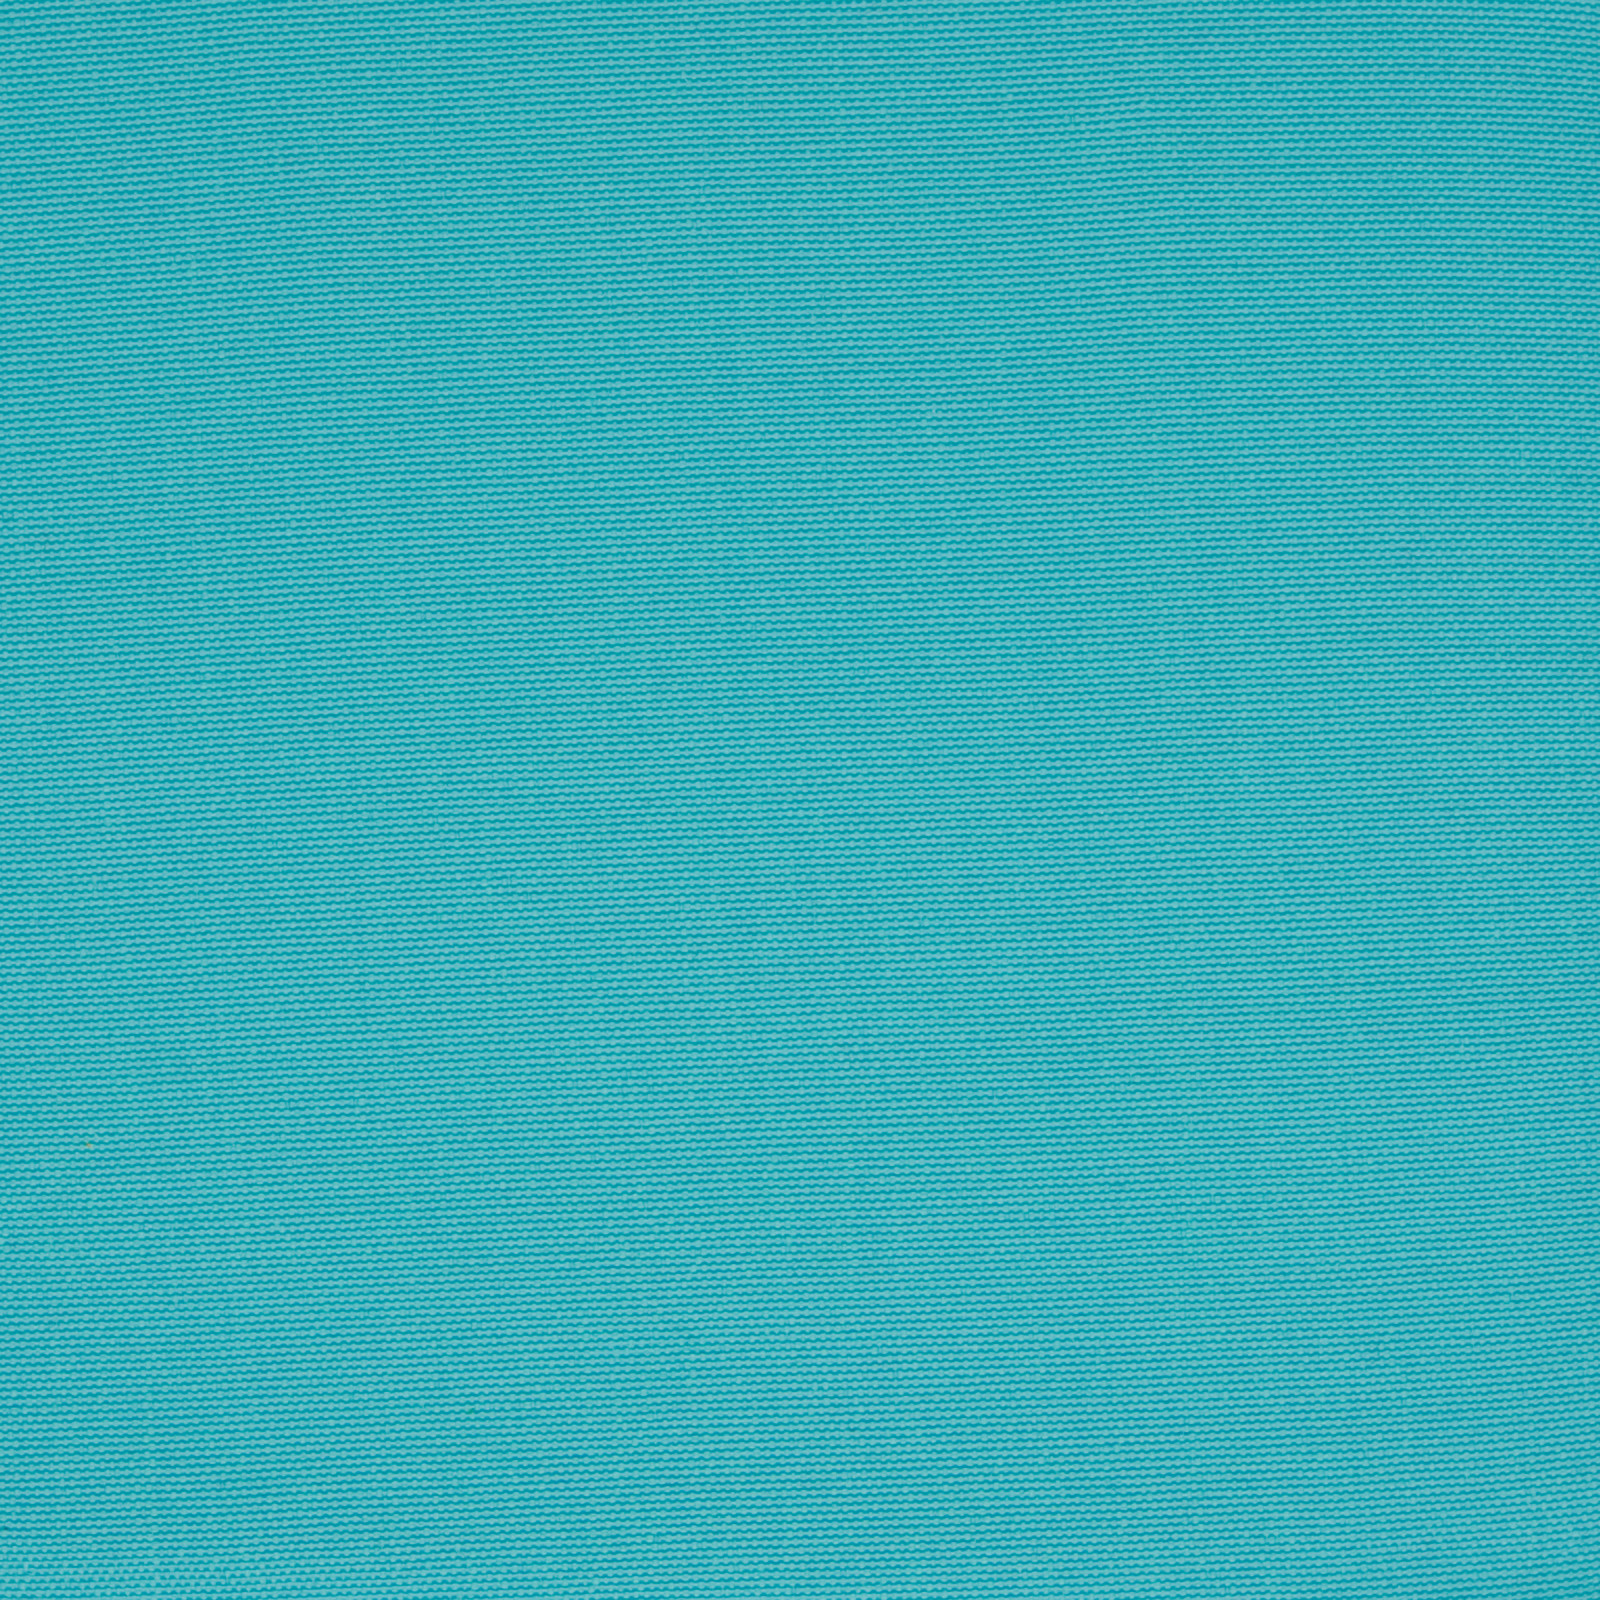 Turquoise Blue And Teal Solid Outdoor Upholstery Fabric